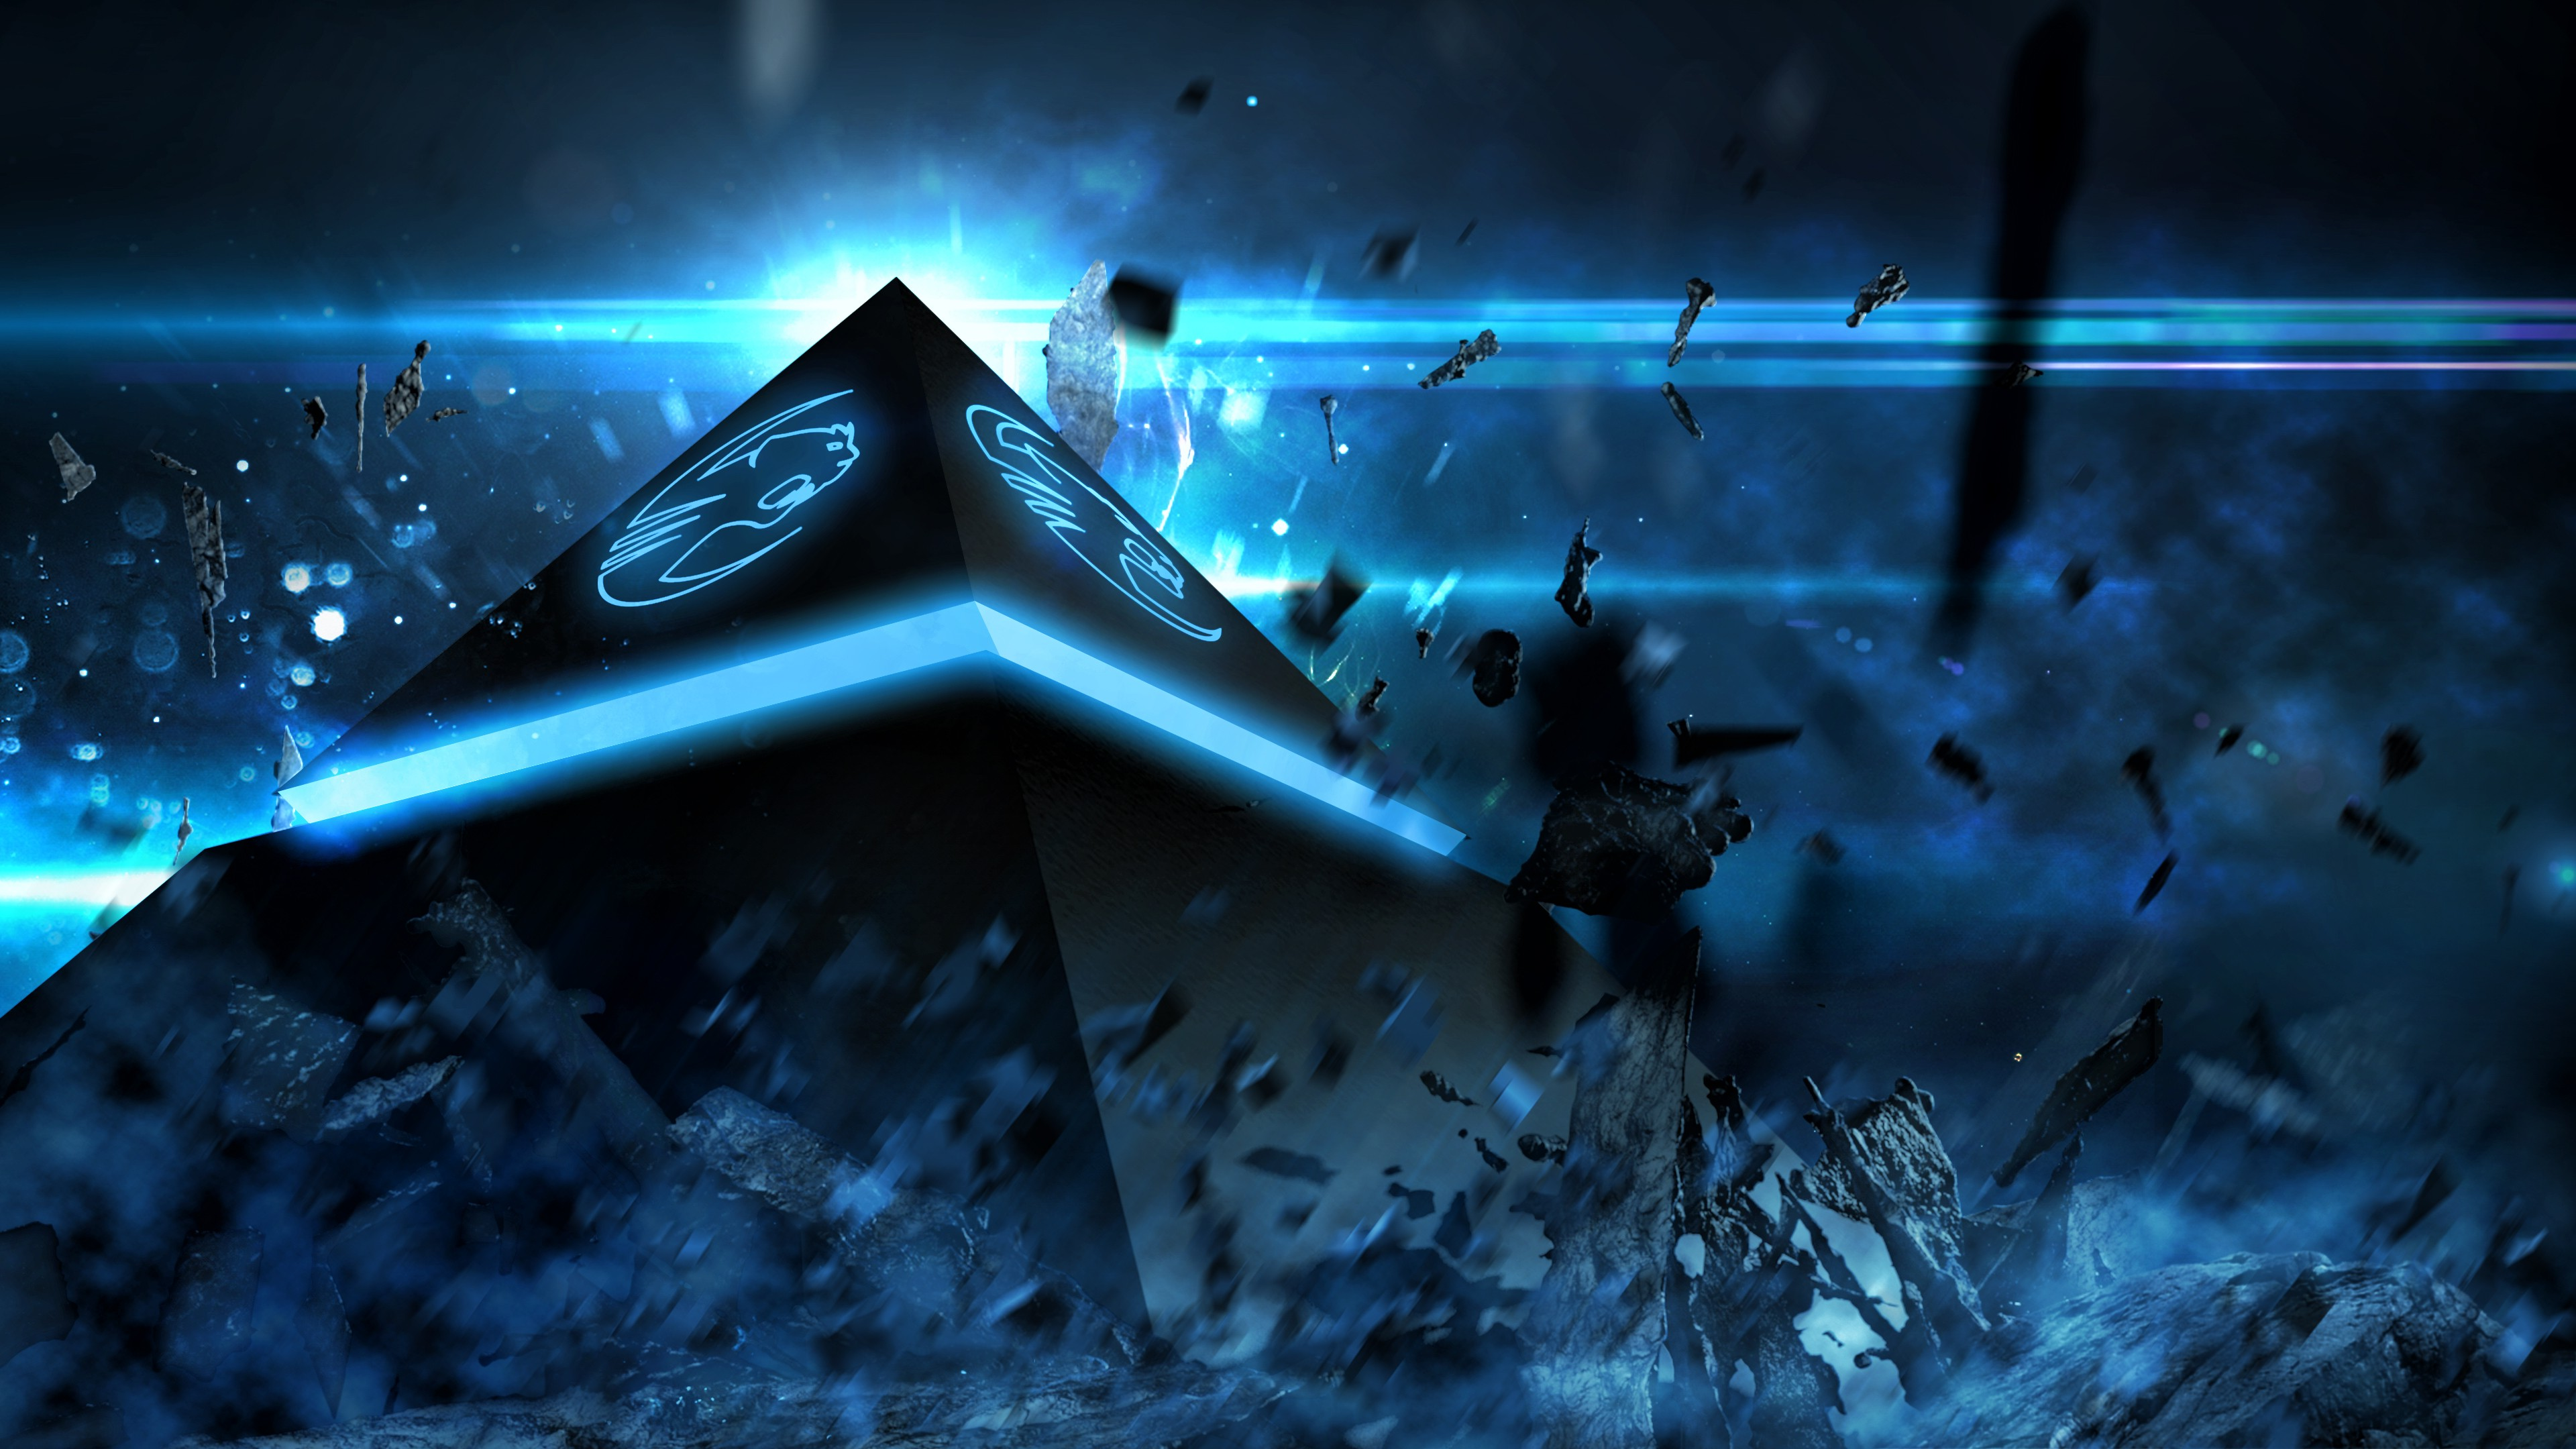 Gaming Background Hd Posted By Zoey Anderson